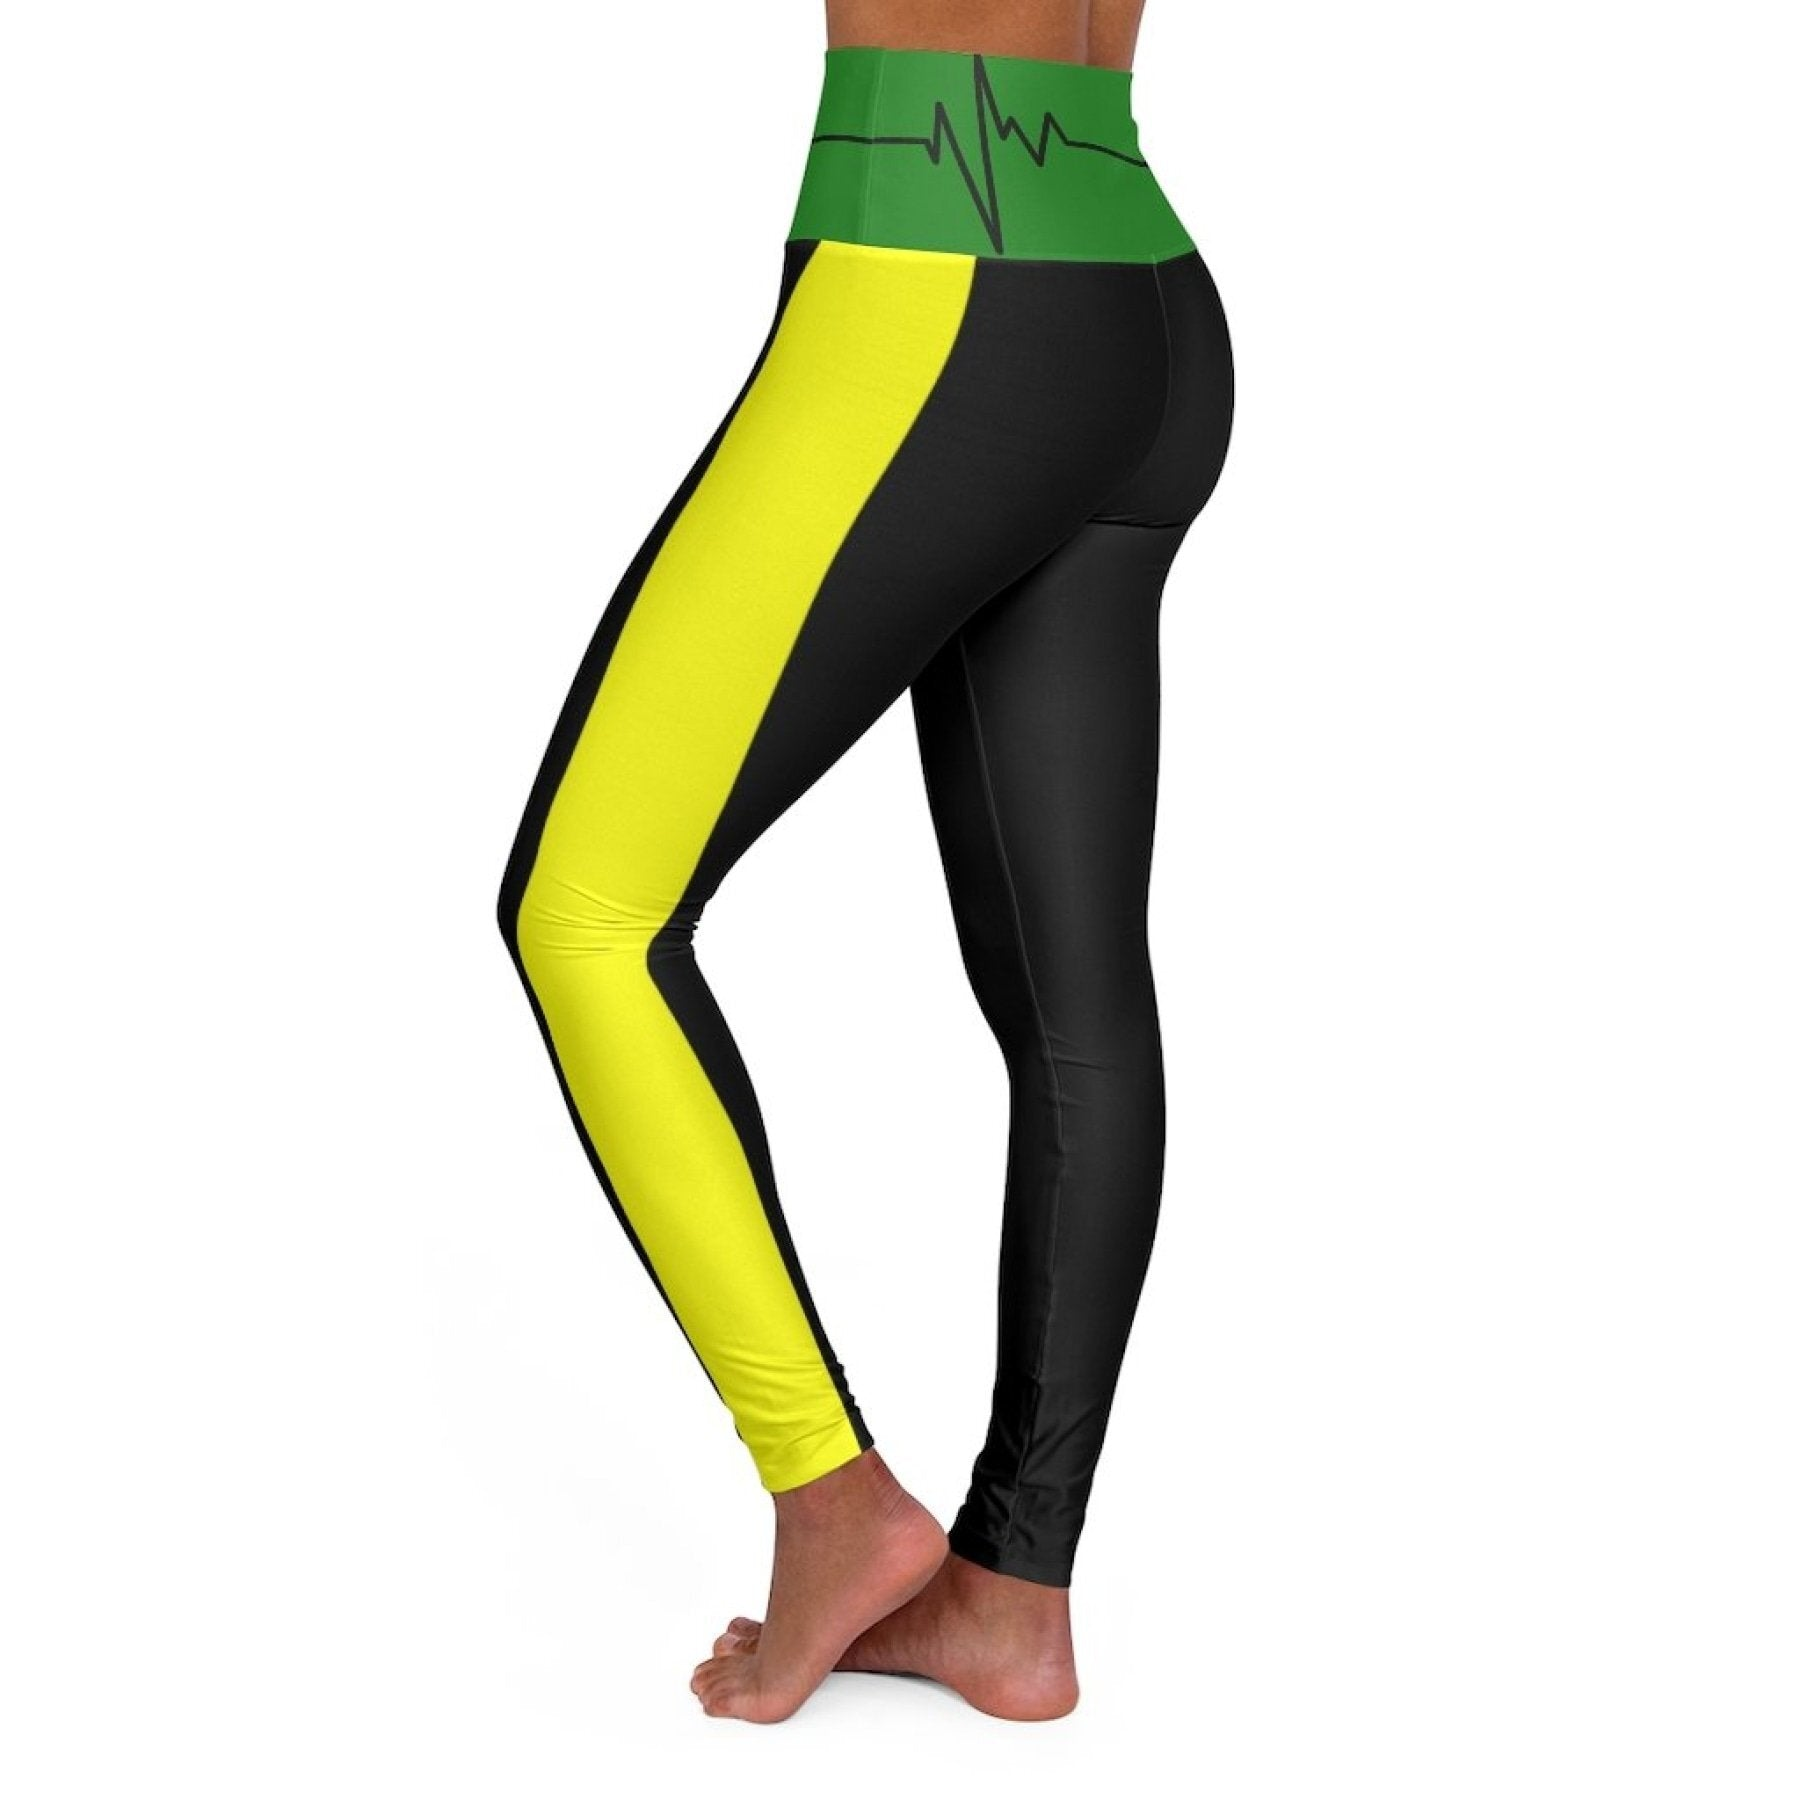 High Waisted Yoga Leggings, Black Red Yellow and Green Beating Heart Sports Pants